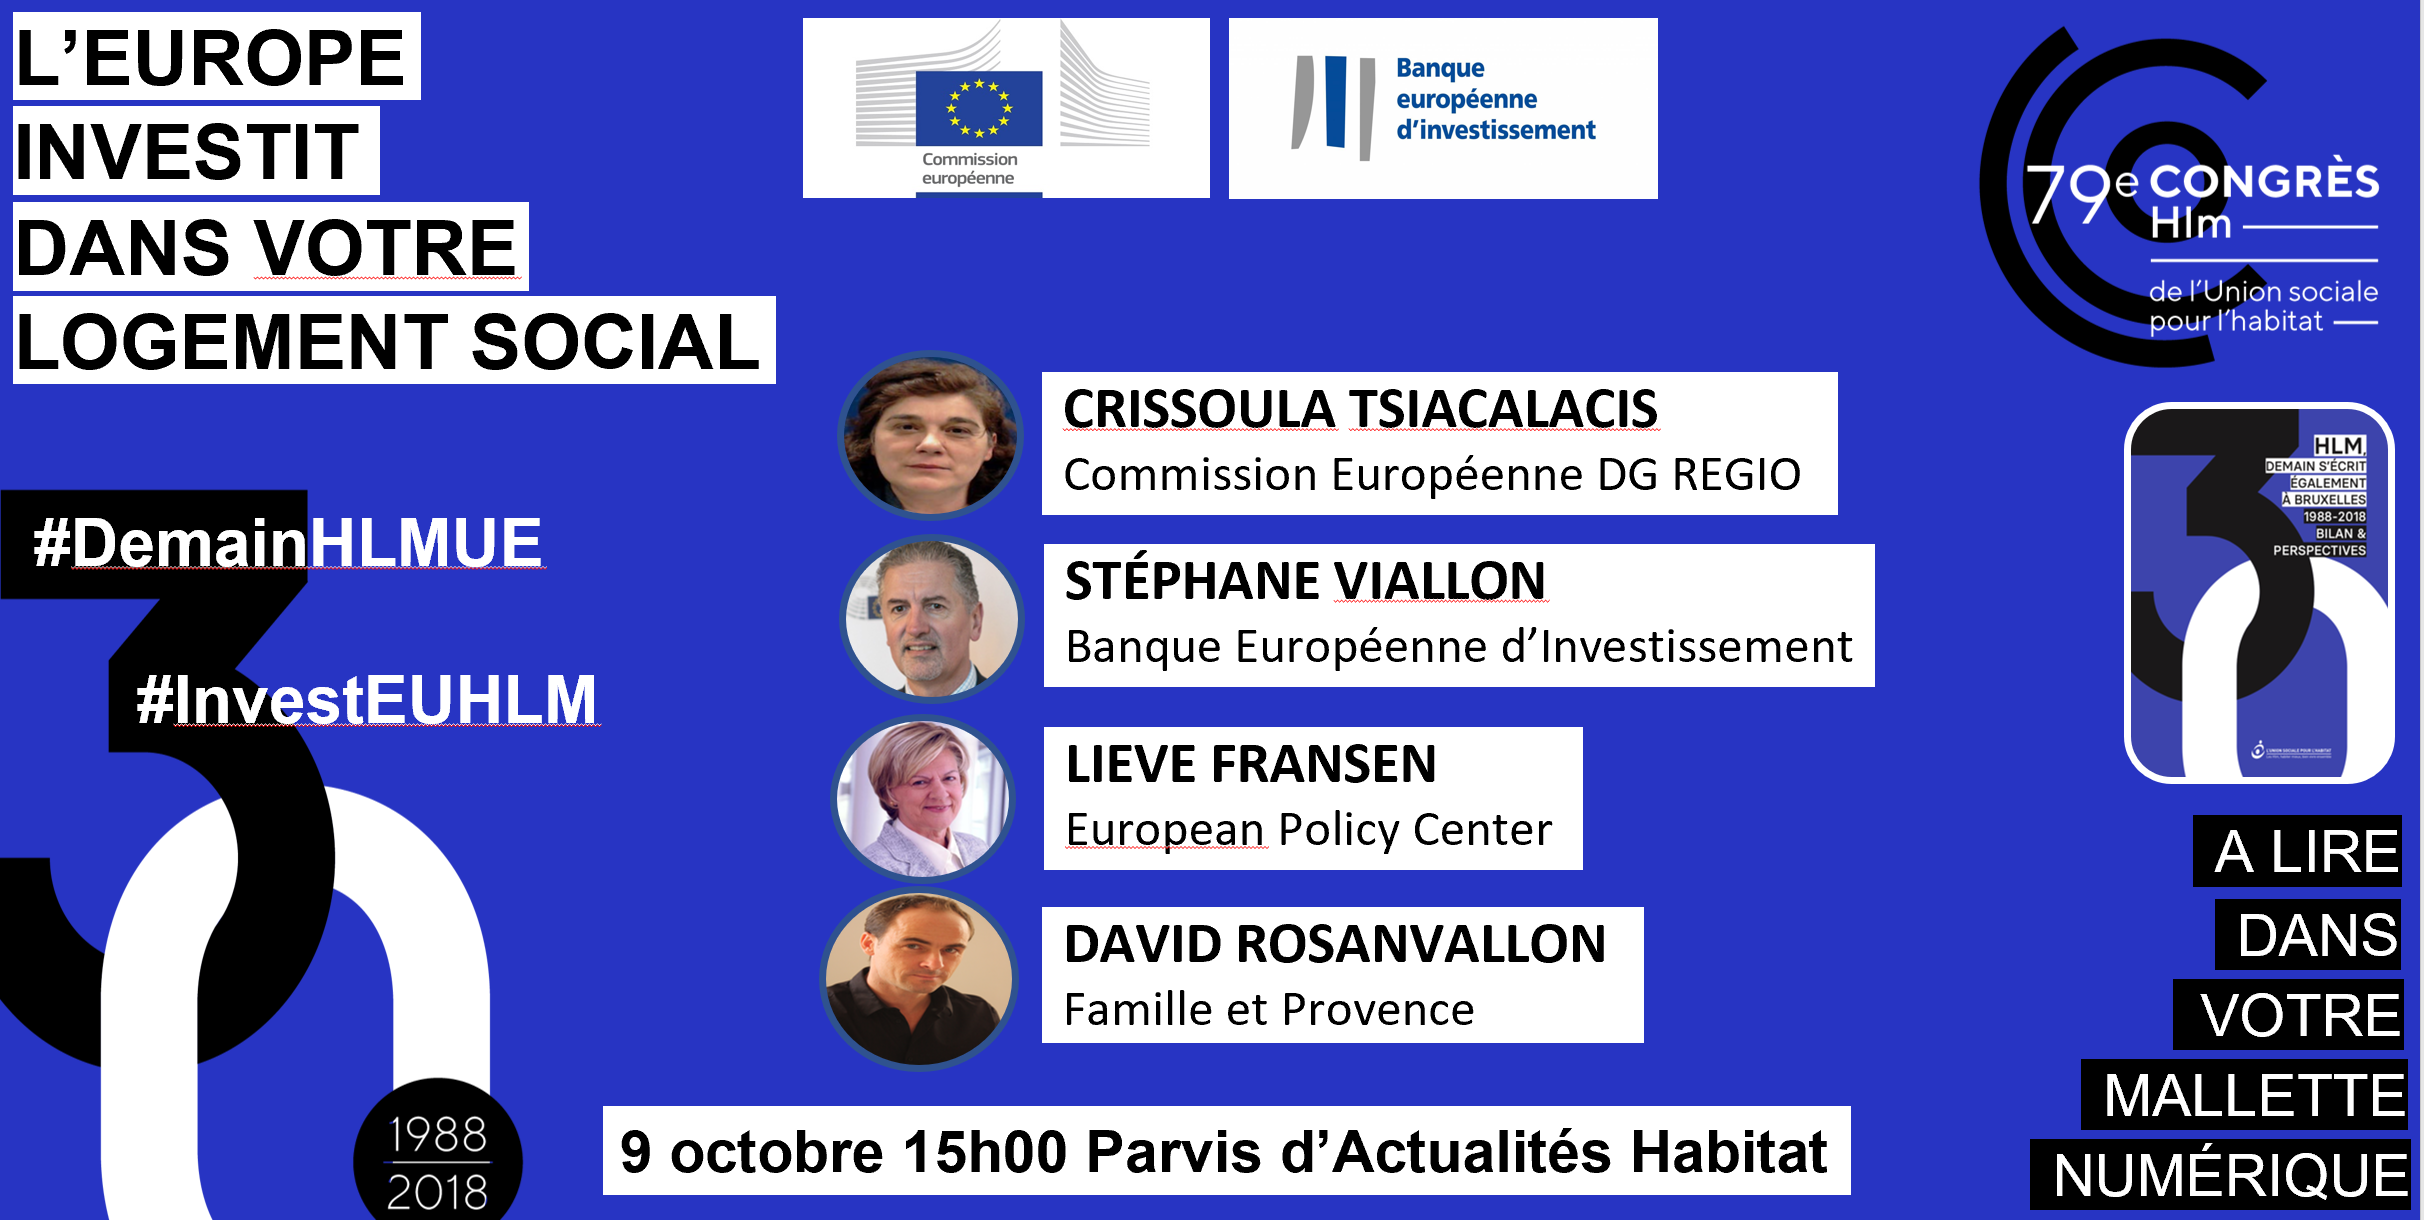 capture_parvis_9_octobre_15h00_2.png